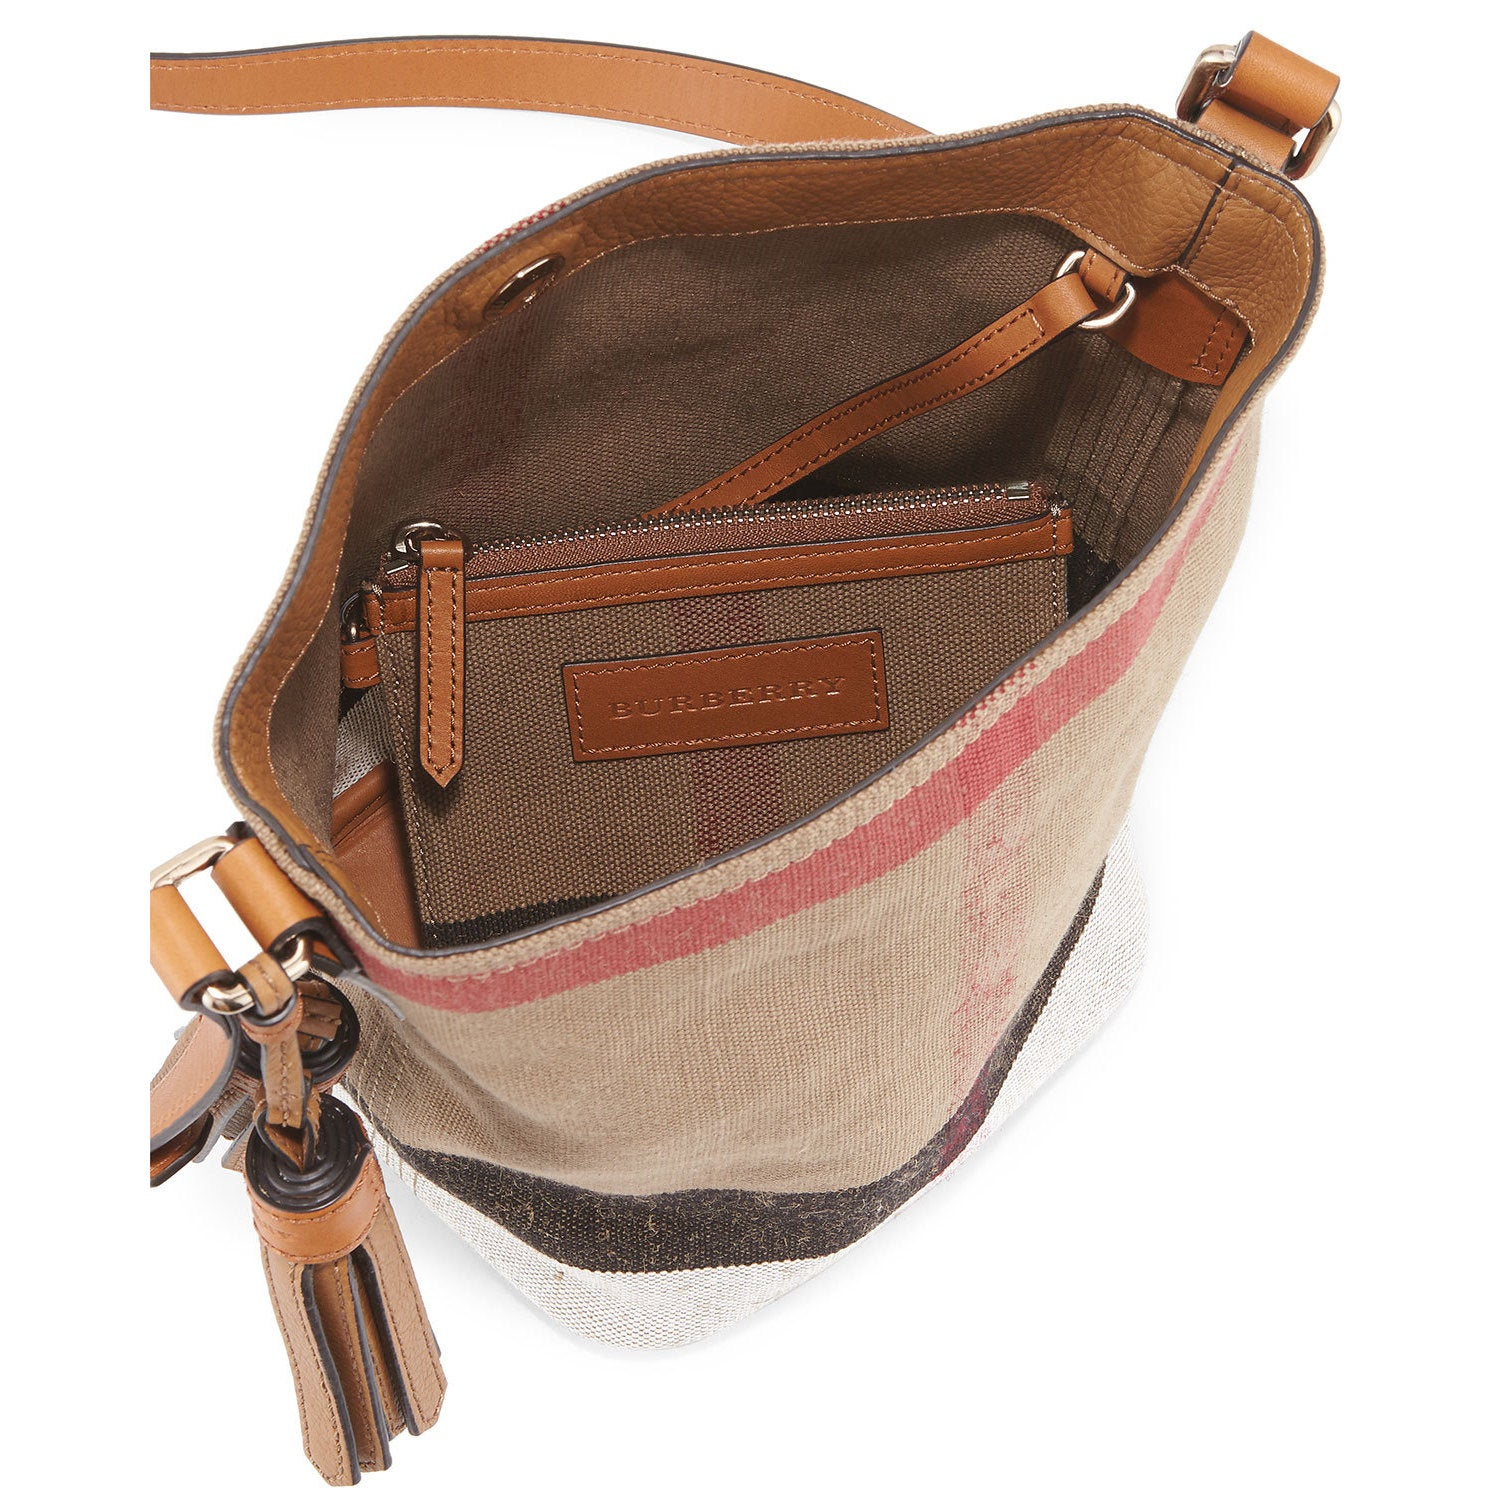 b33afe558397 Shop Burberry Mini Ashby Check Crossbody Bag - Free Shipping Today -  Overstock - 14137771